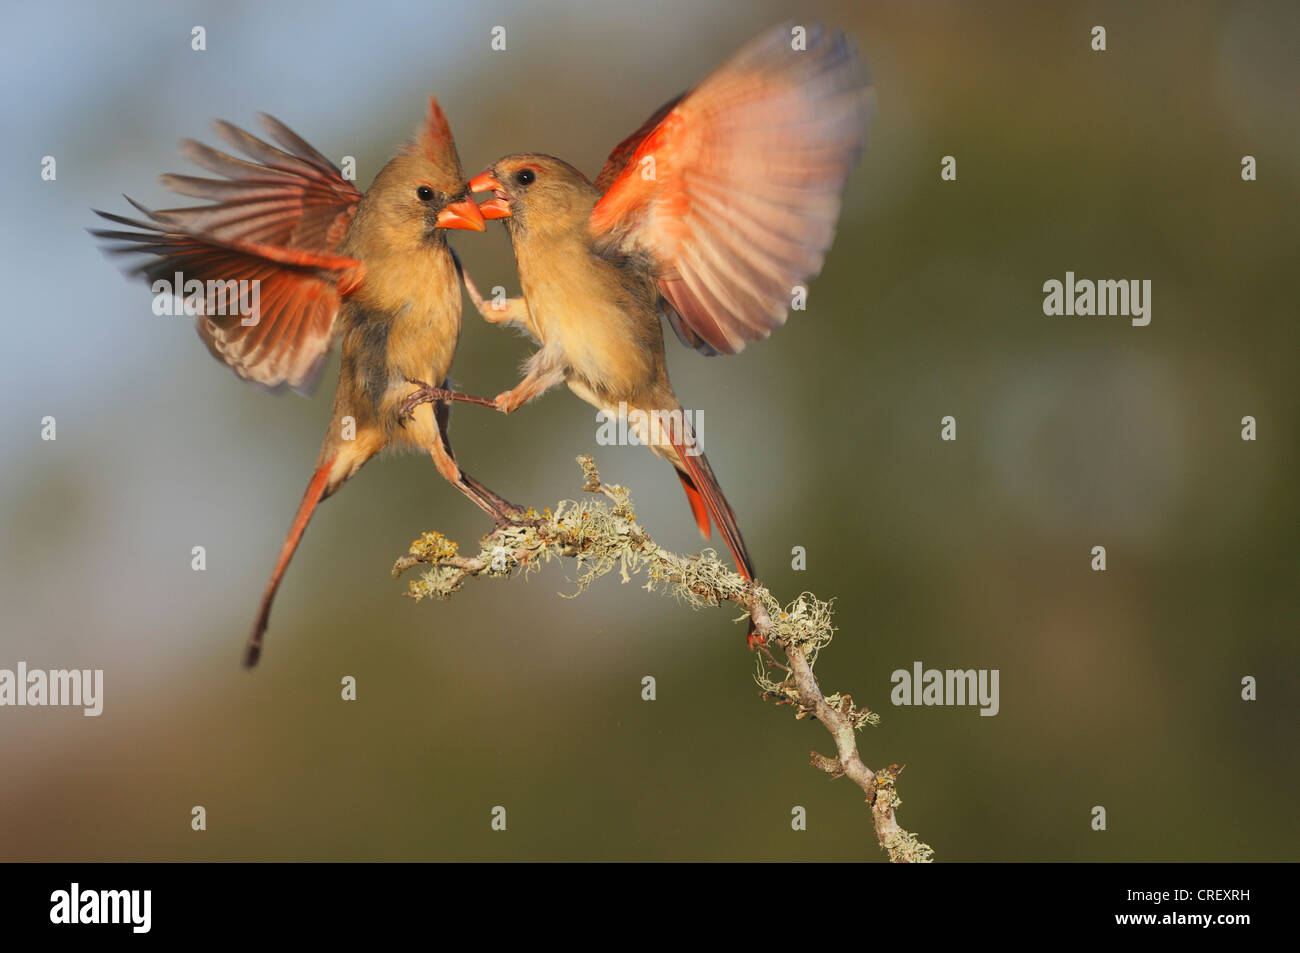 Northern Cardinal (Cardinalis cardinalis), females fighting, Dinero, Lake Corpus Christi, South Texas, USA - Stock Image